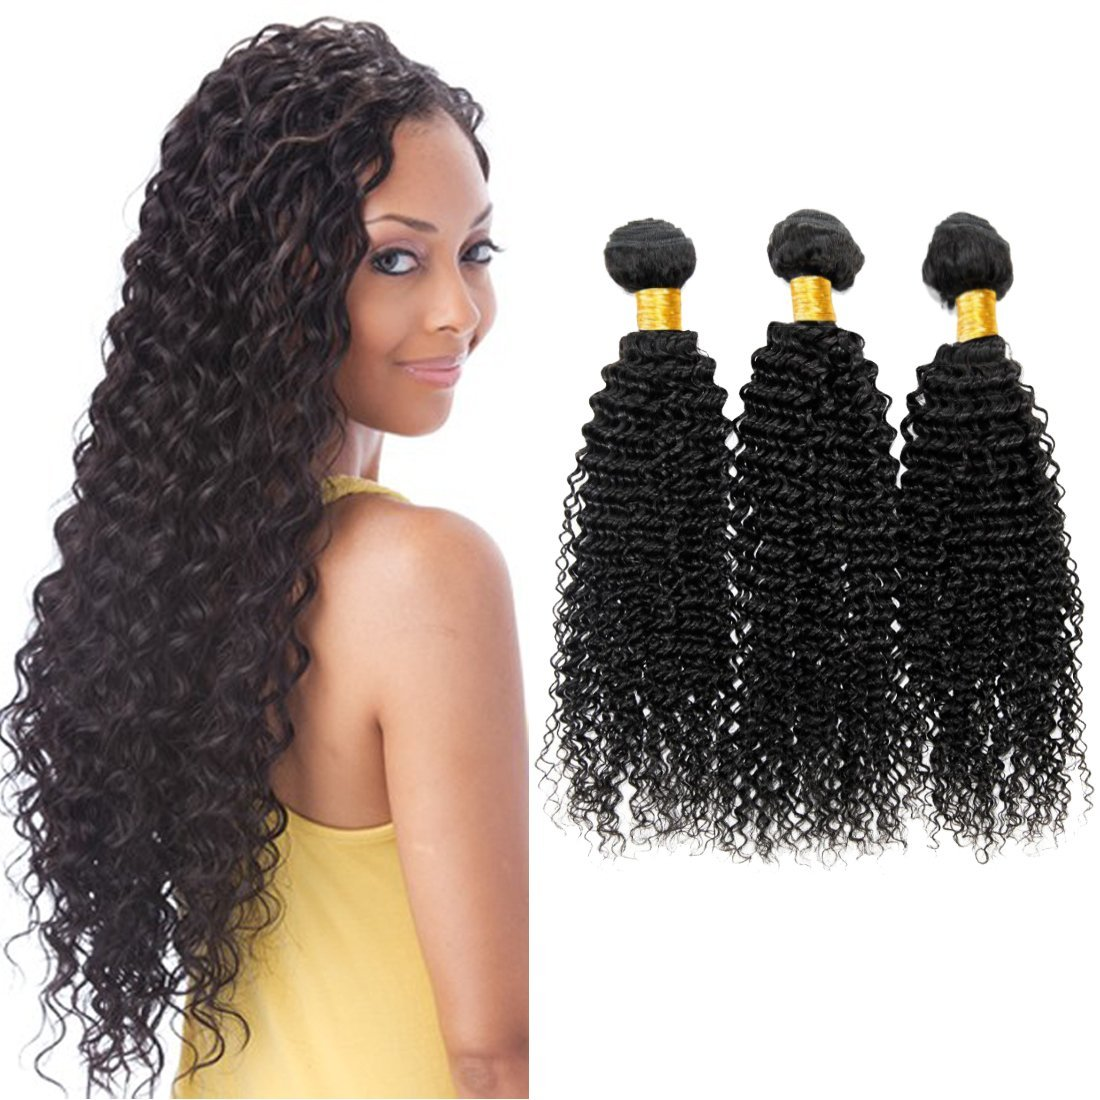 Brazilian Deep Wave Hair 3 Bundles for Black Women